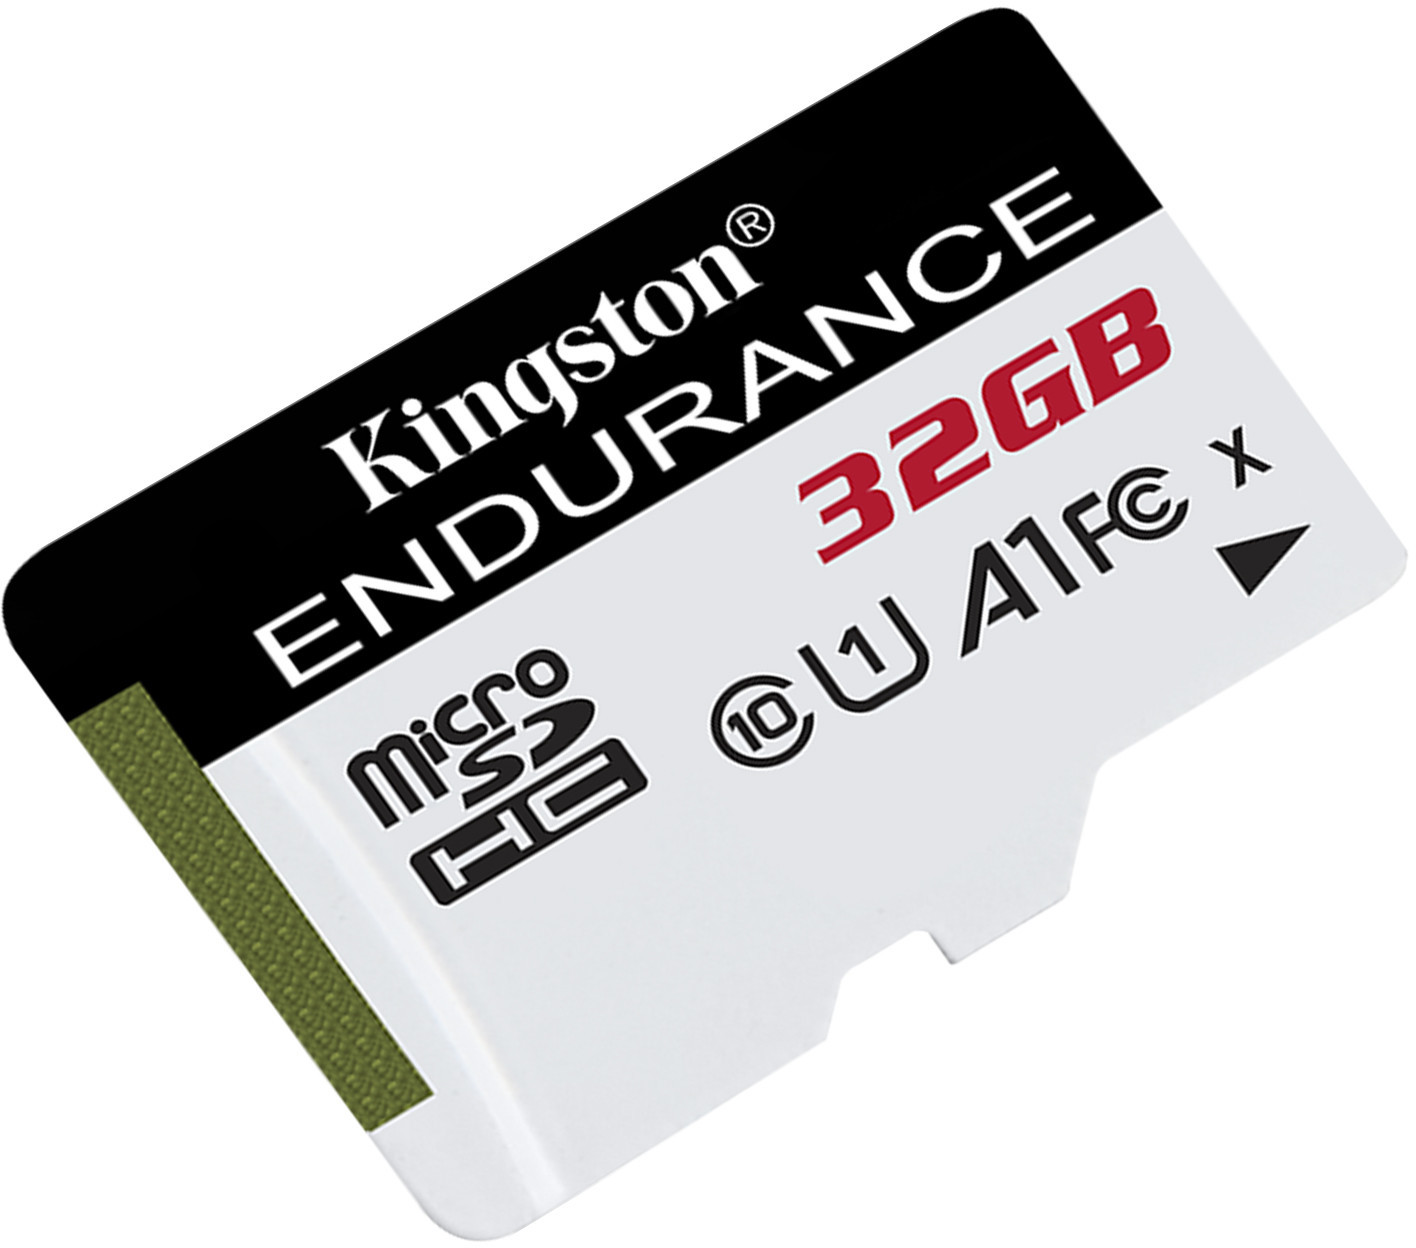 100MBs Works with Kingston Kingston 512GB Honor 7A MicroSDXC Canvas Select Plus Card Verified by SanFlash.